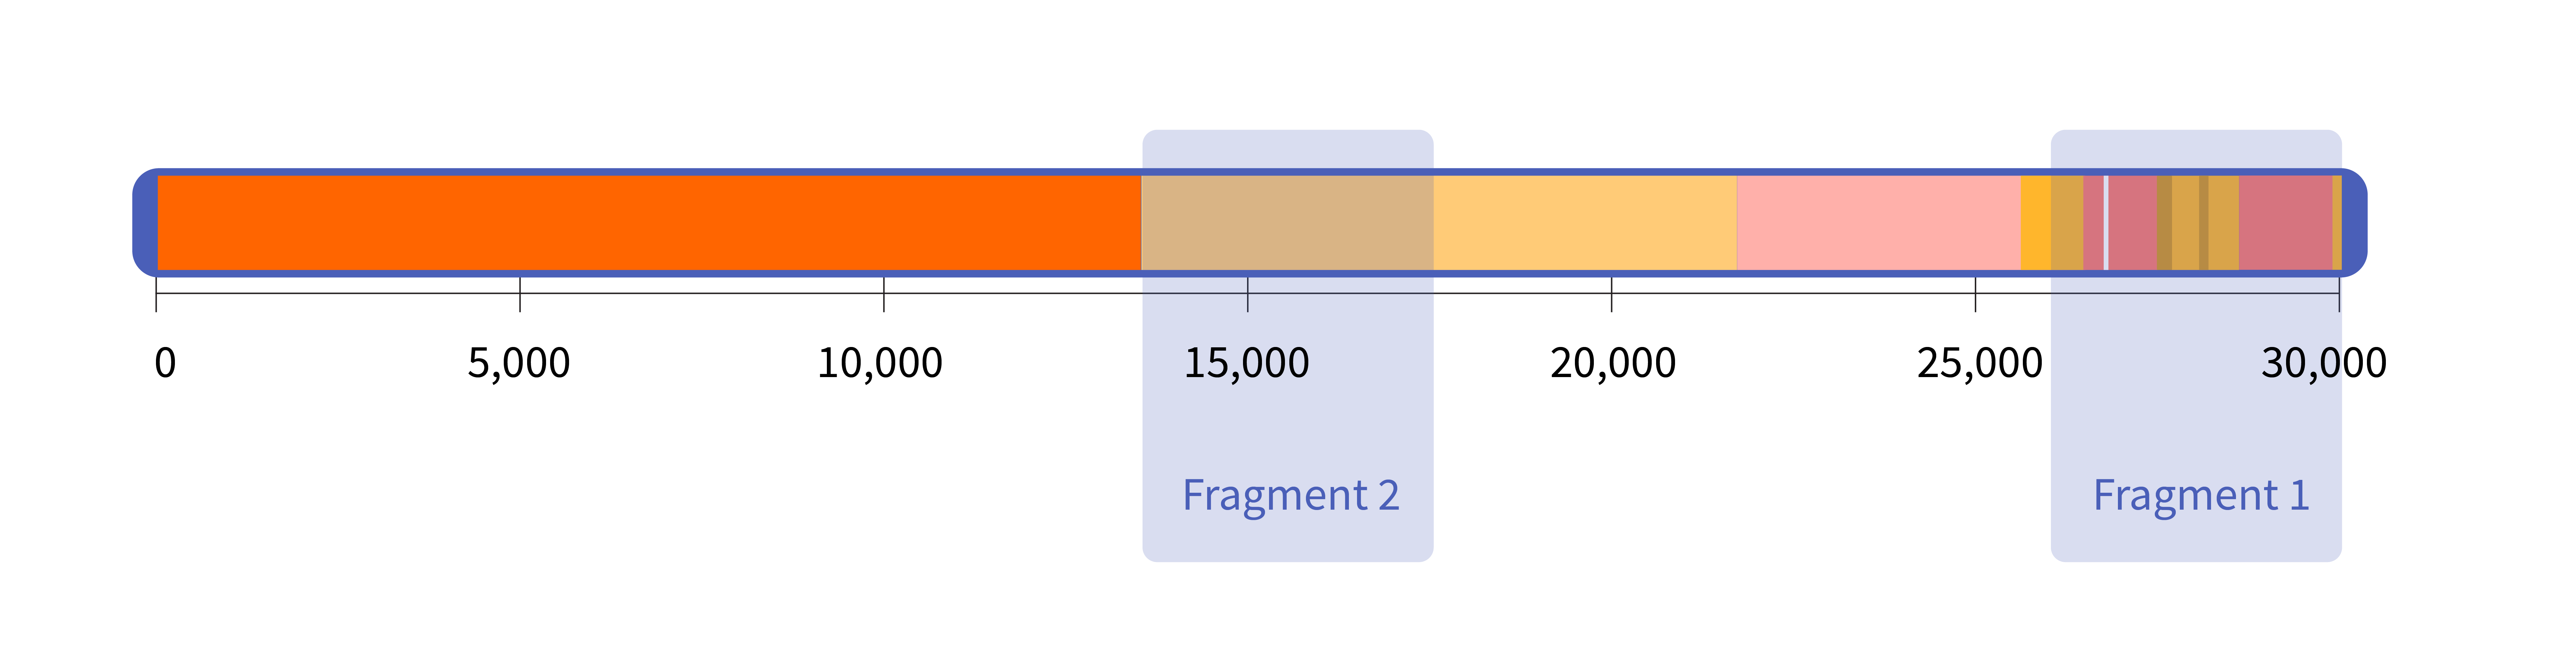 A horizontal rectangle representing the SARS-CoV-2 genome and two blue, transparent rectangles superimposed on it, representing the size and location of the synthetic RNA fragments from NIST.